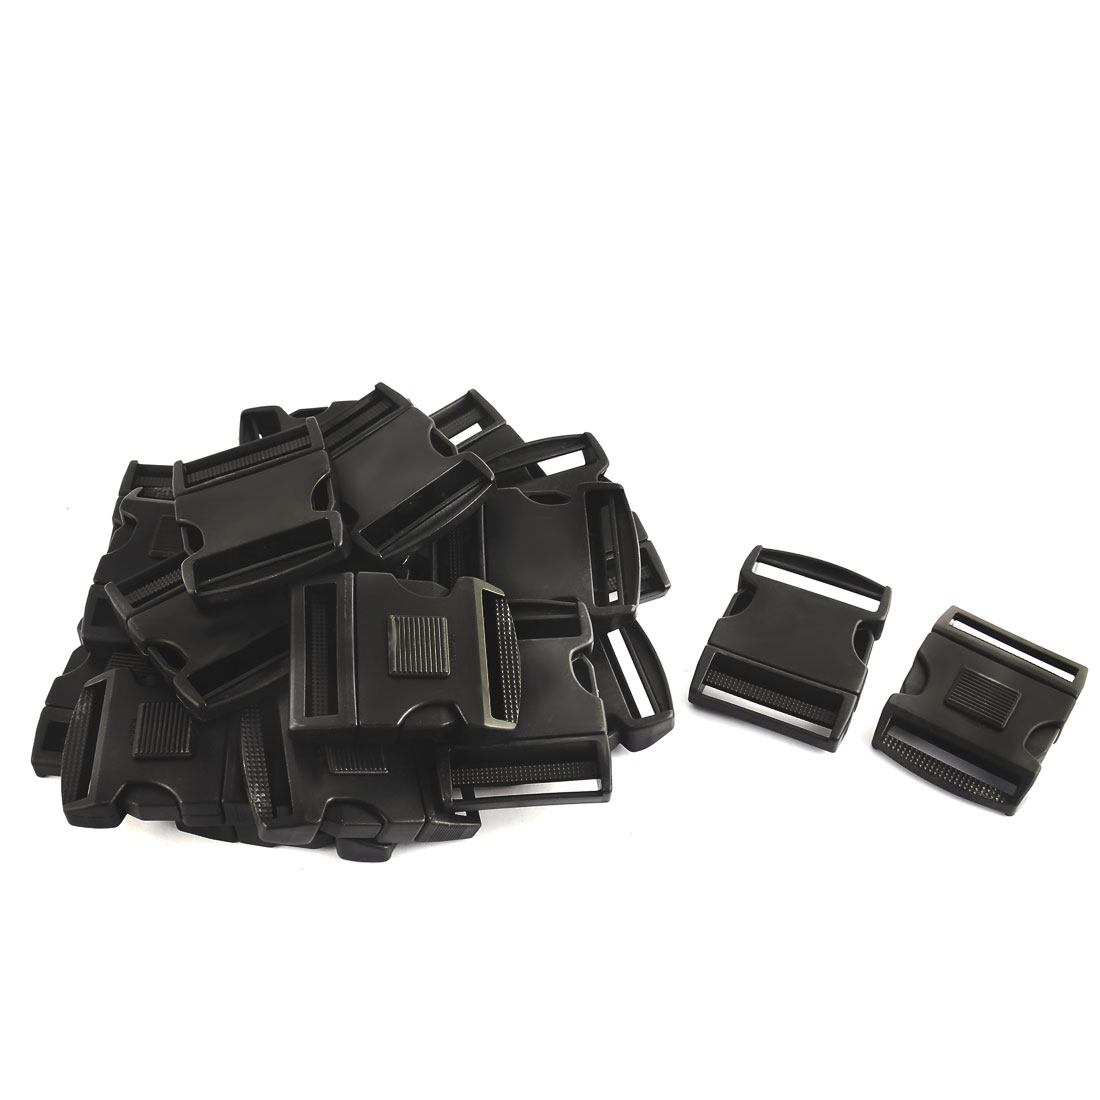 Suitcase Backpack Bag Strap Plastic Side Quick Release Buckle Black 51mm 20pcs